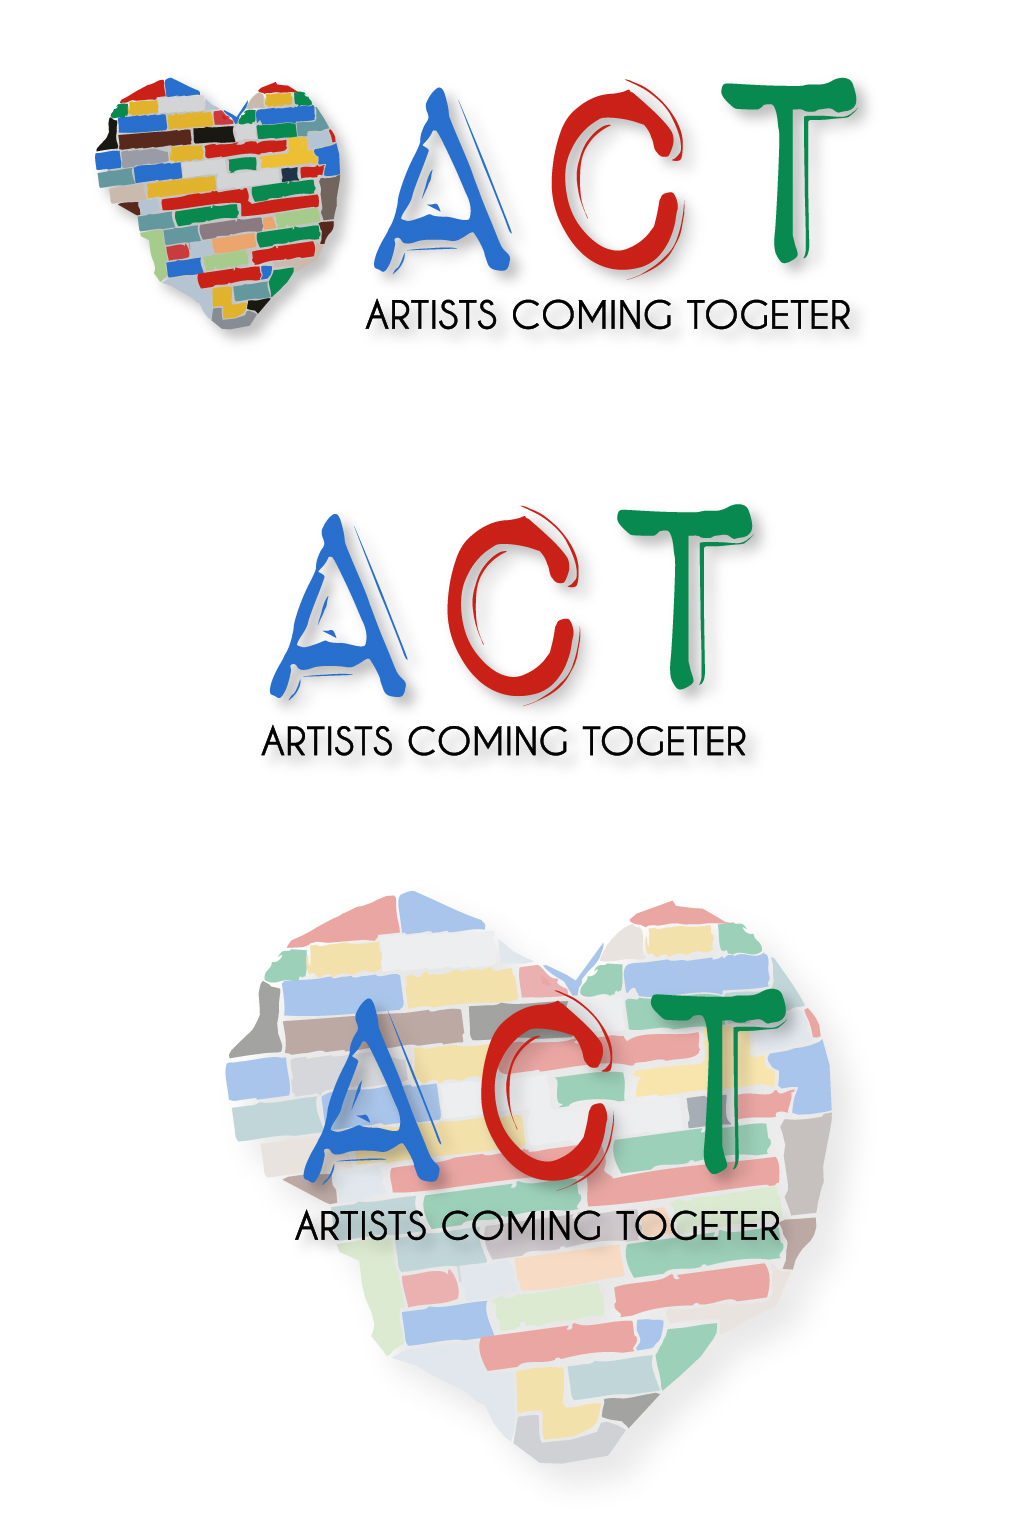 Logo Design by Vasil Boyadzhiev - Entry No. 50 in the Logo Design Contest Creative Logo Design for A.C.T. Artists Coming Together.